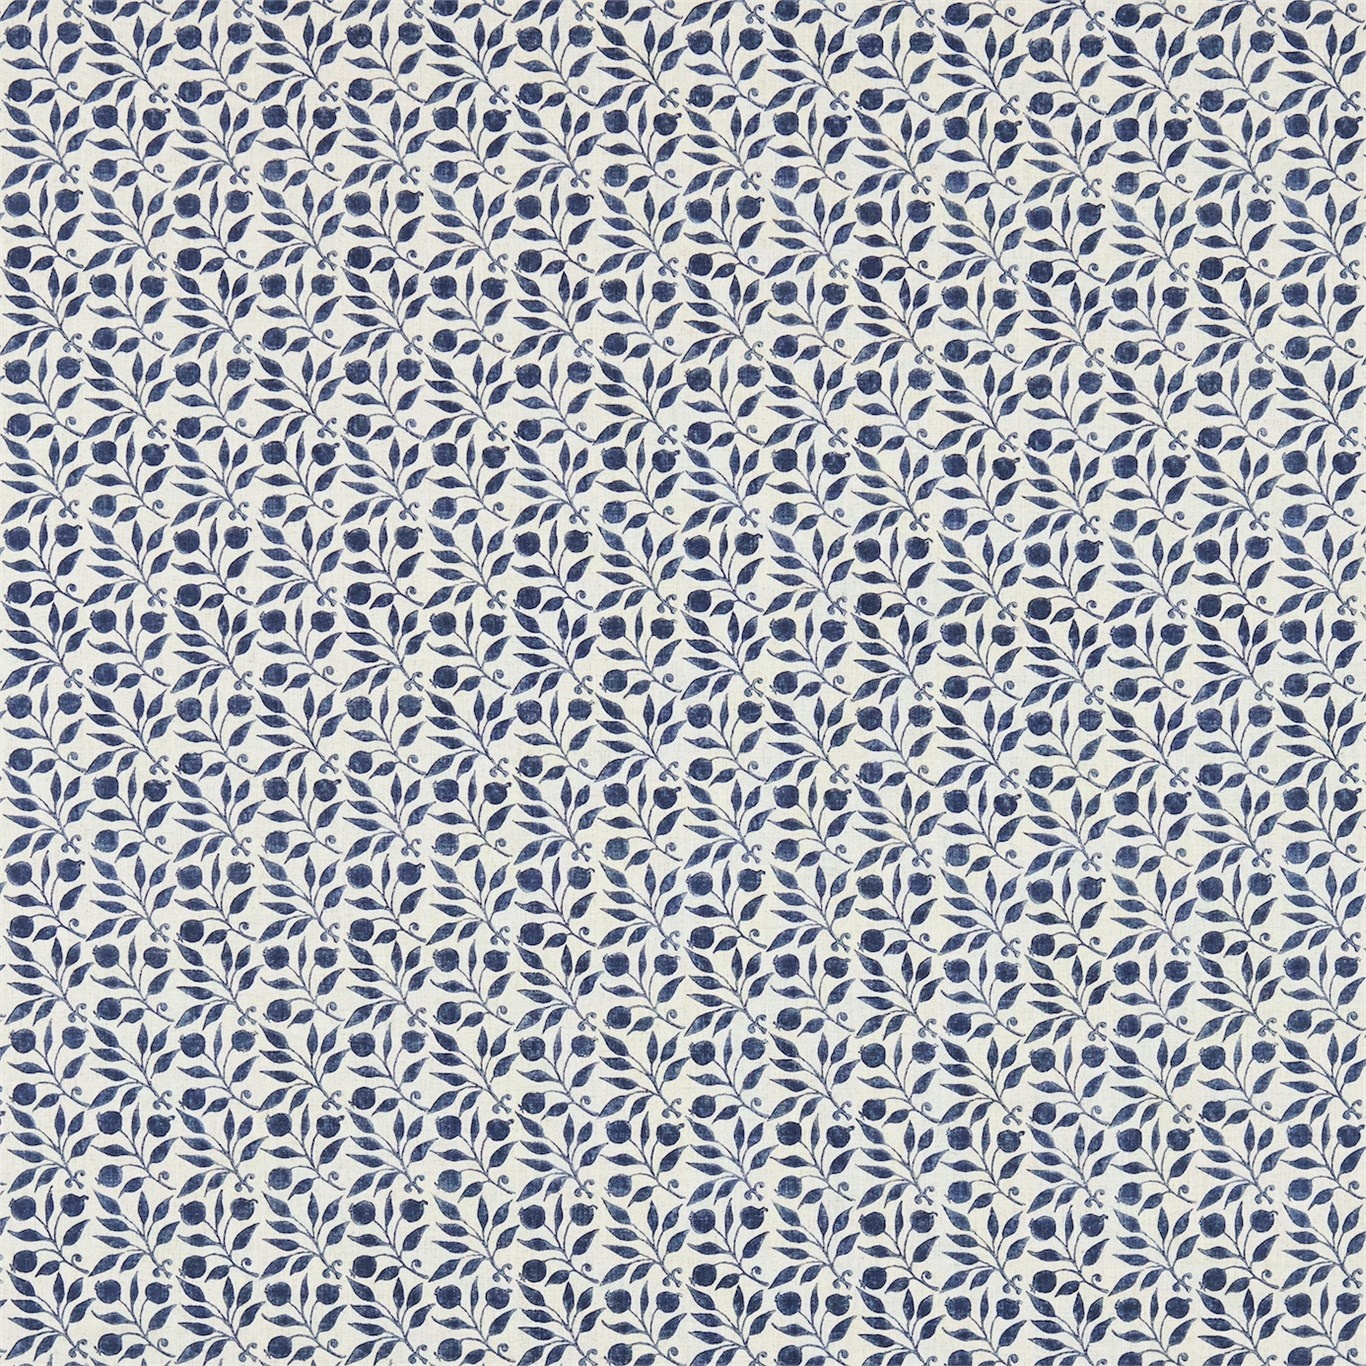 Image of Morris & Co Rosehip Indigo Curtain Fabric 224486, 226457